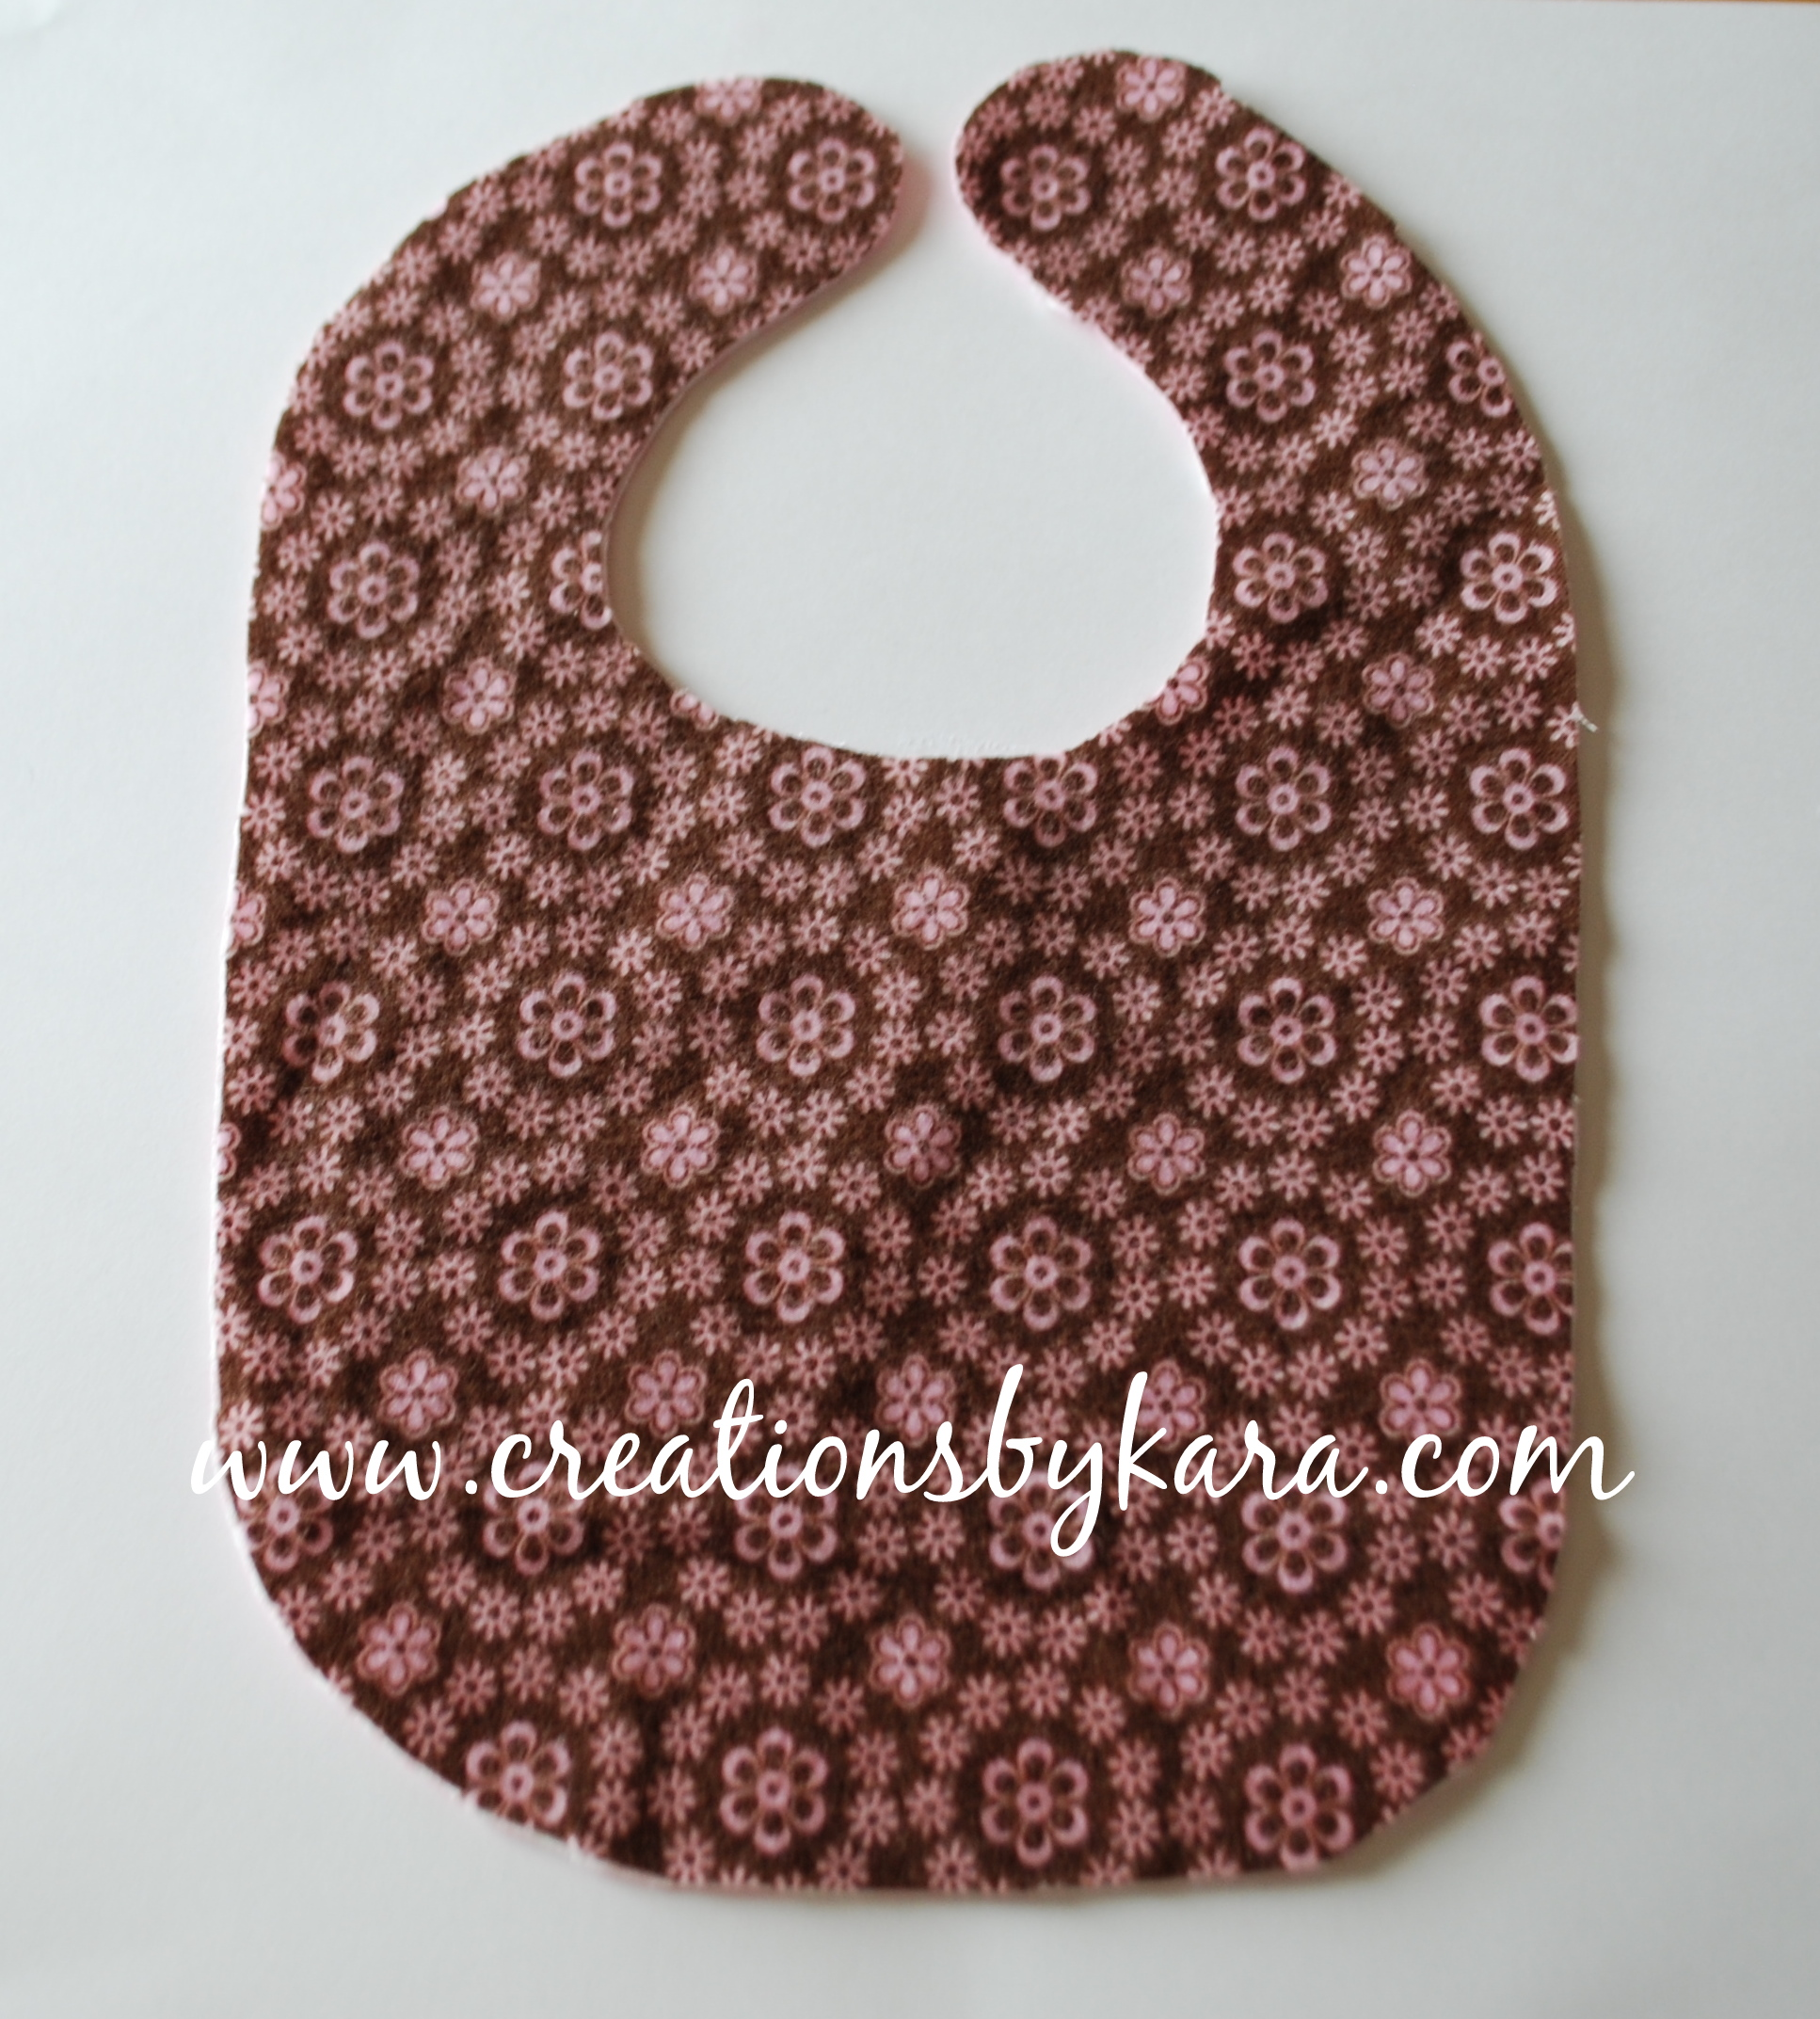 frayed-edge-bib-003-270x300